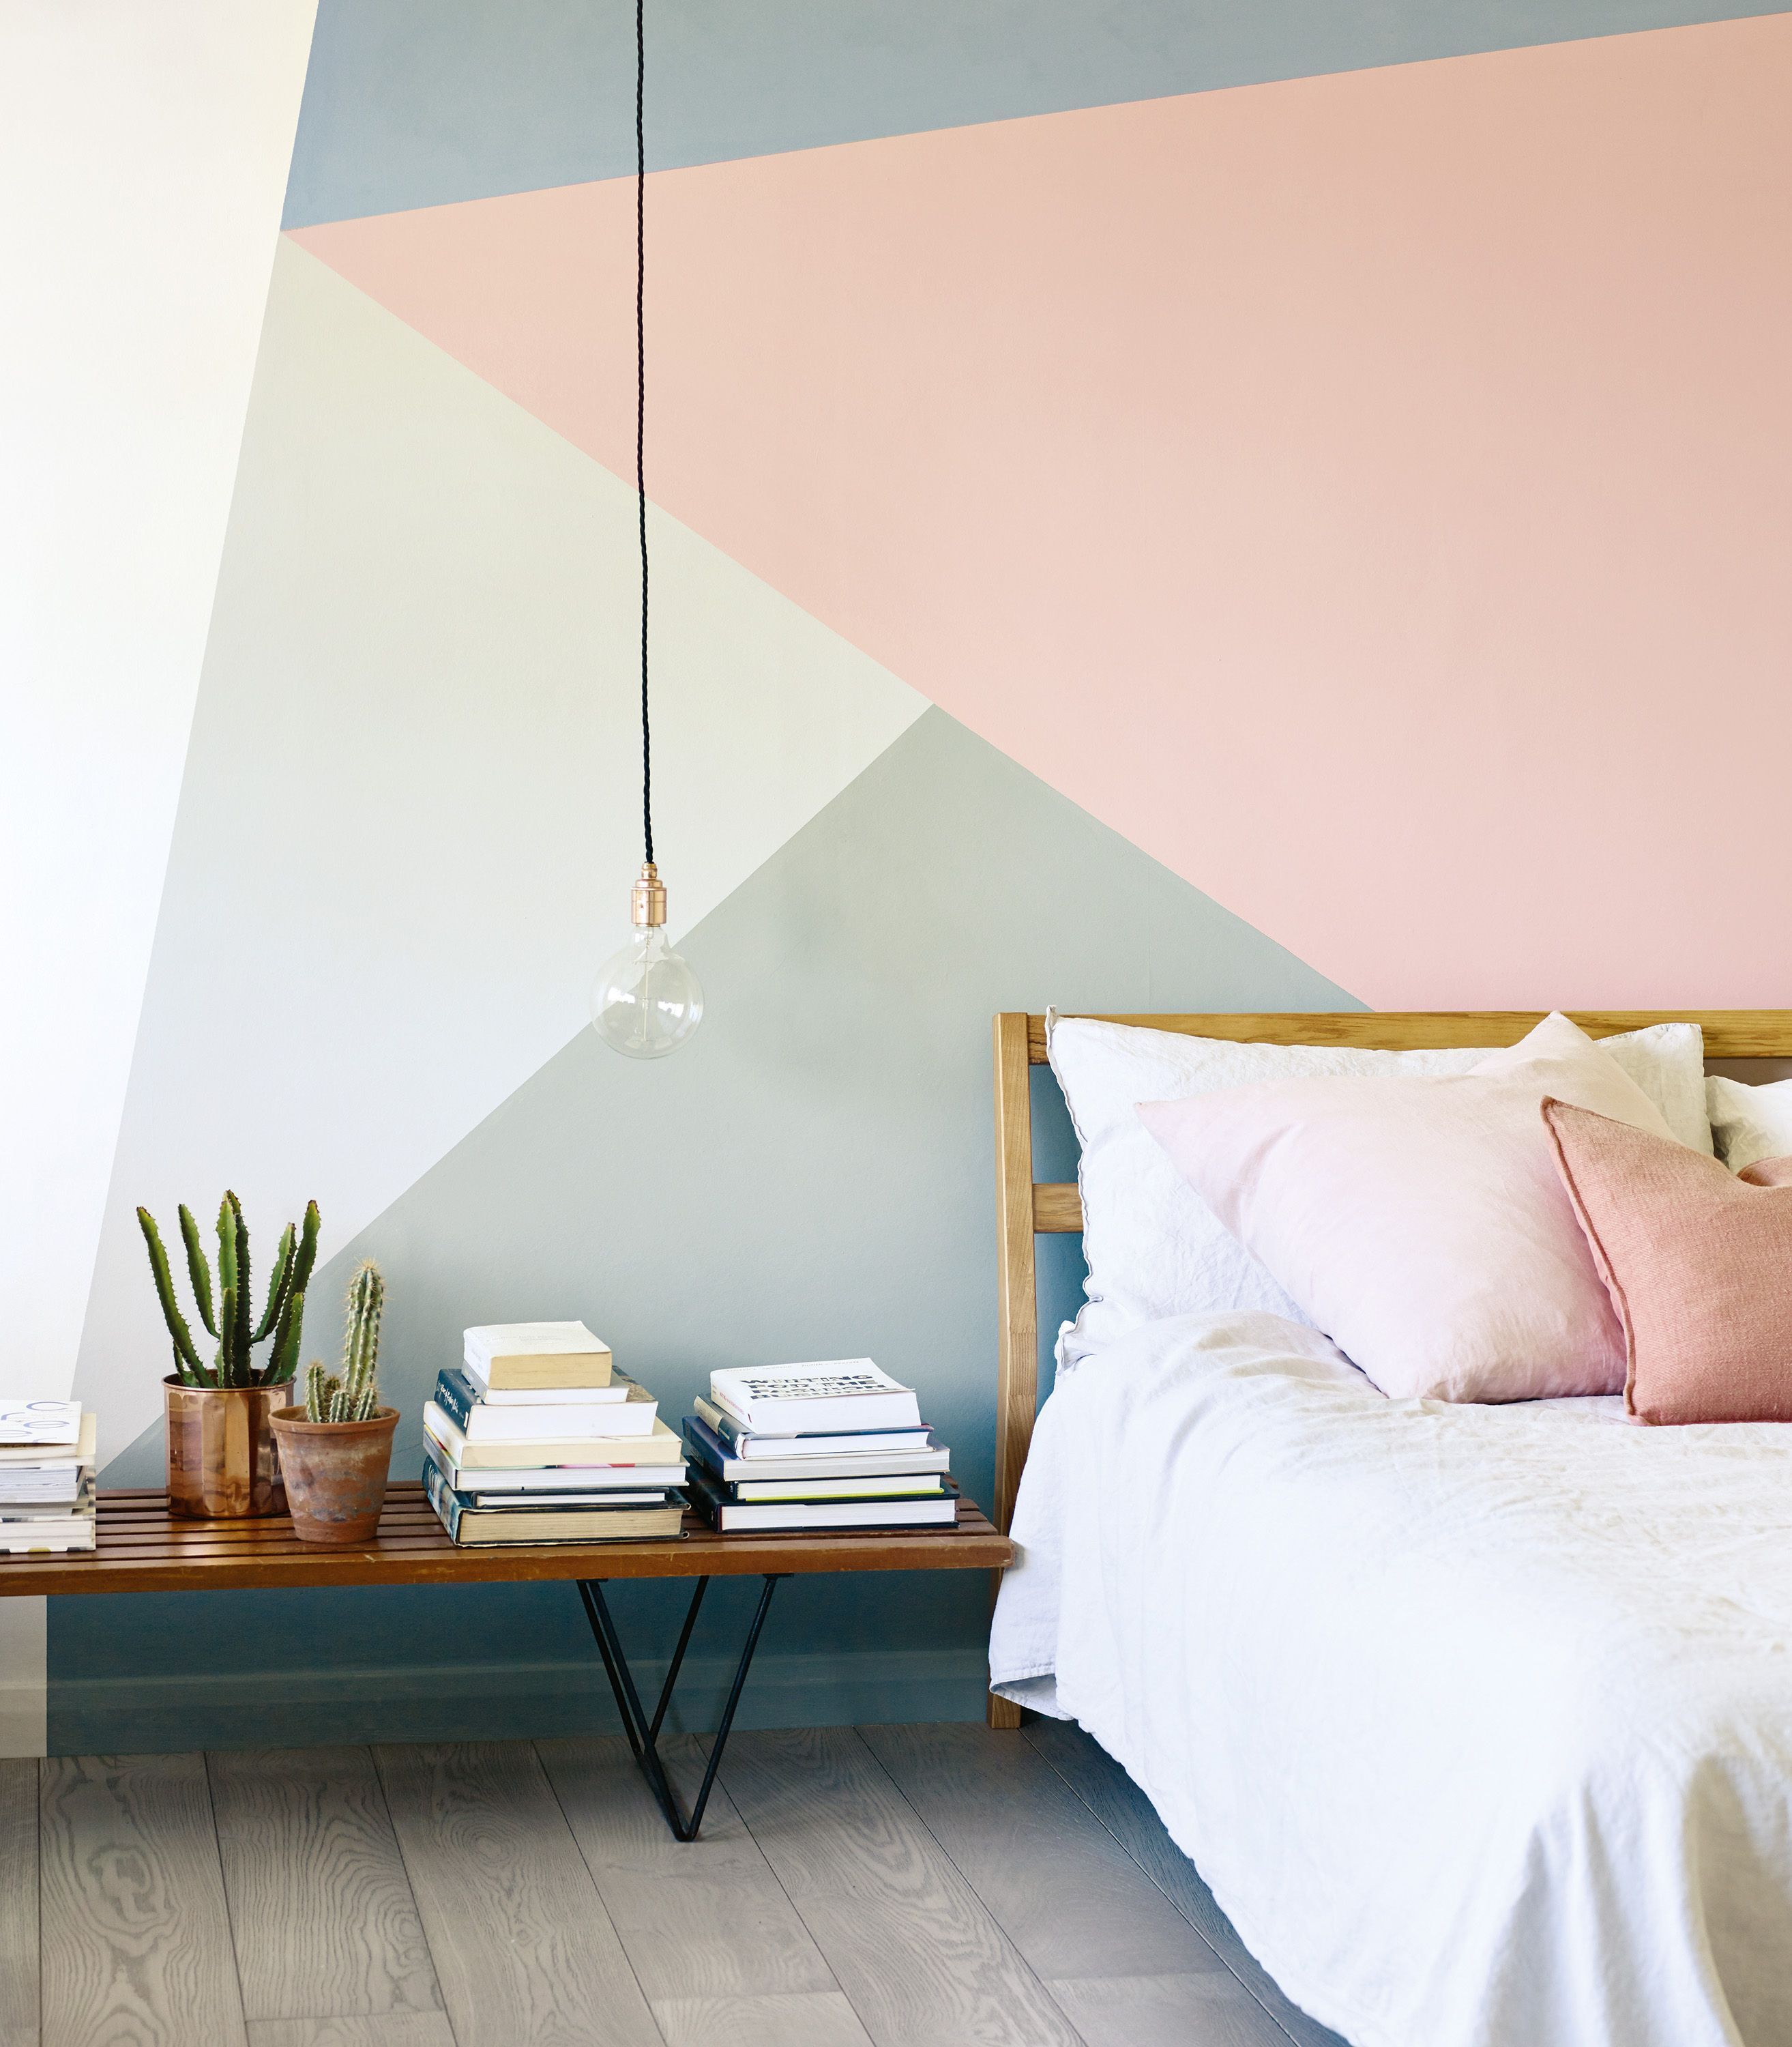 Geometric Wall Pattern In Pink Grey Blue And White By Fired Earth In A Bedroom Pinkbedroomfor Beautiful Bedroom Colors Bedroom Wall Paint Wall Decor Bedroom